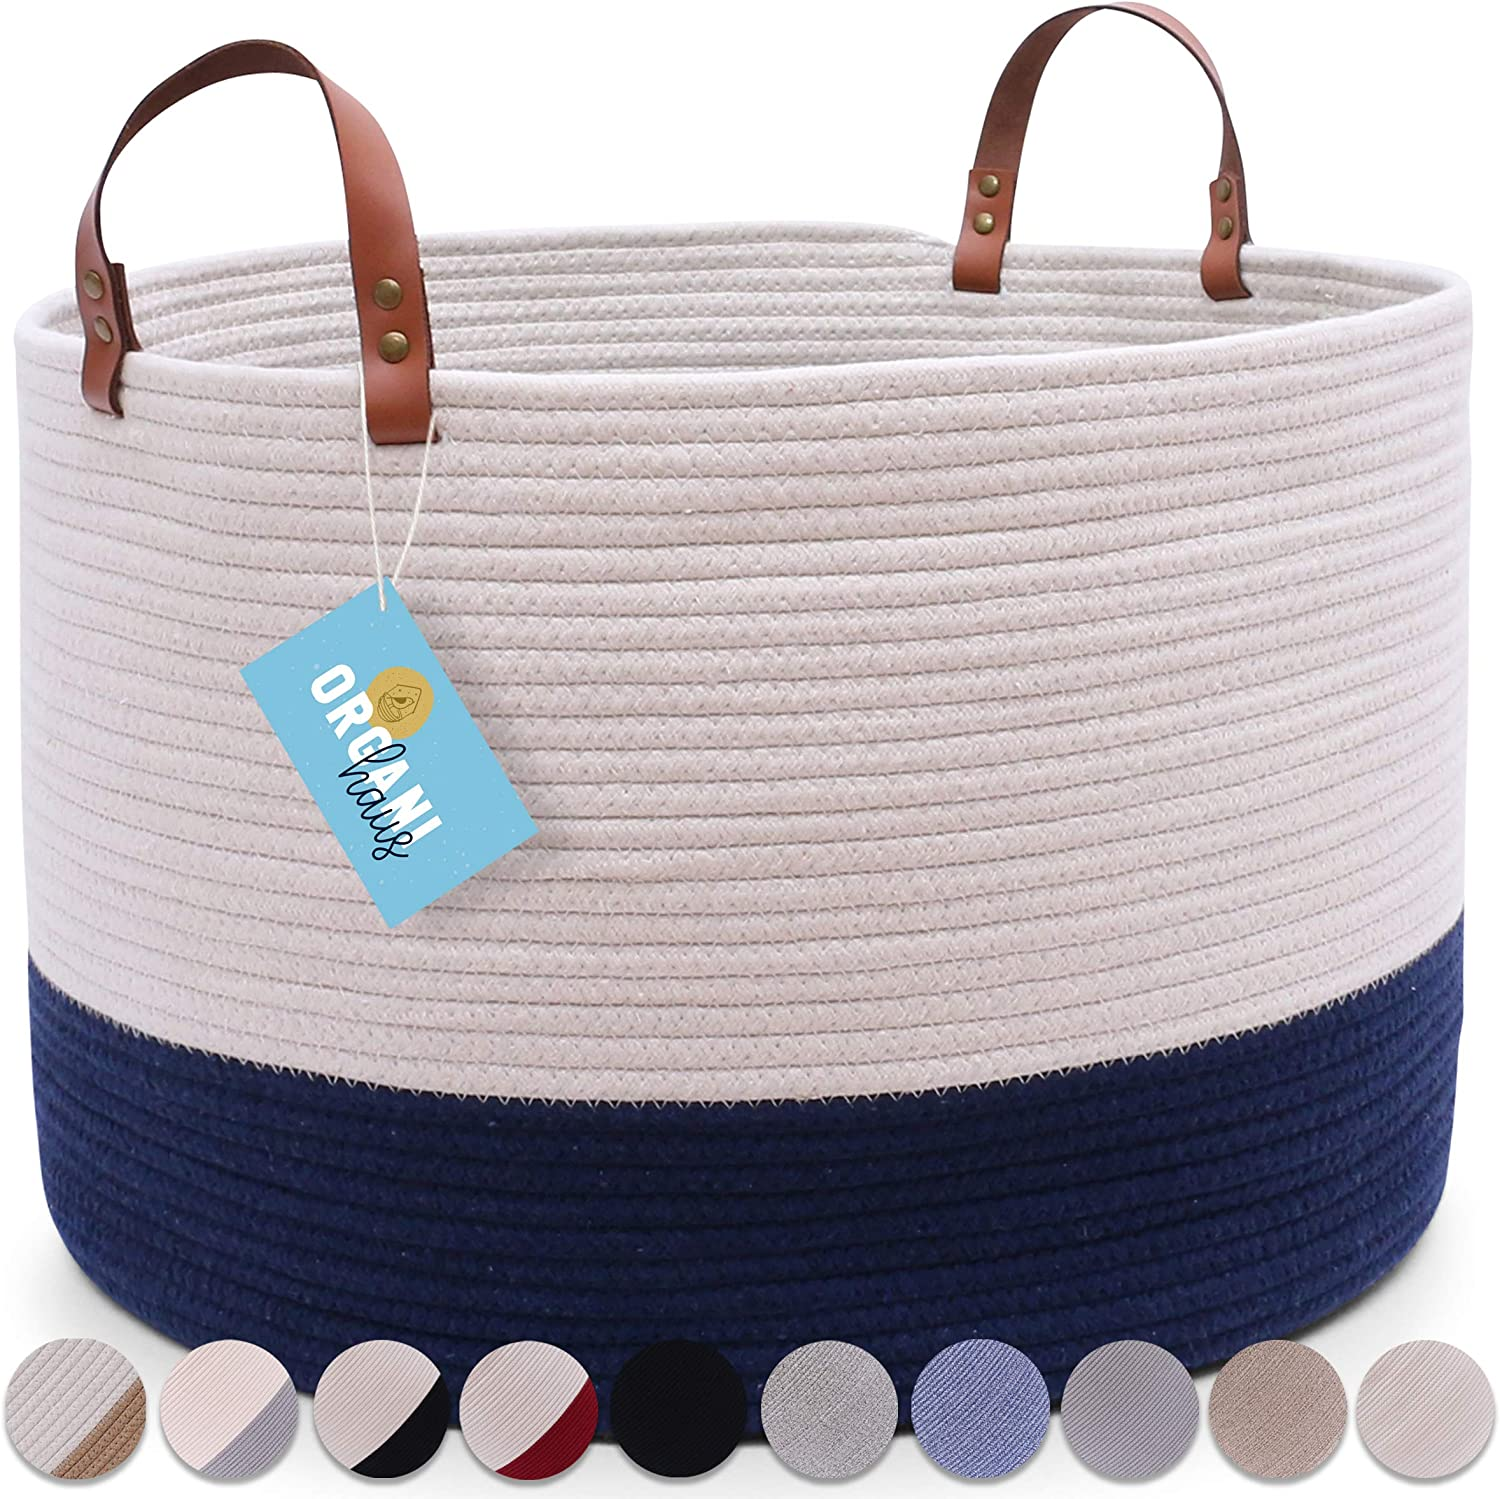 "OrganiHaus XXL Cotton Rope Basket with Real Leather Handles | Wide 20""x13"" 